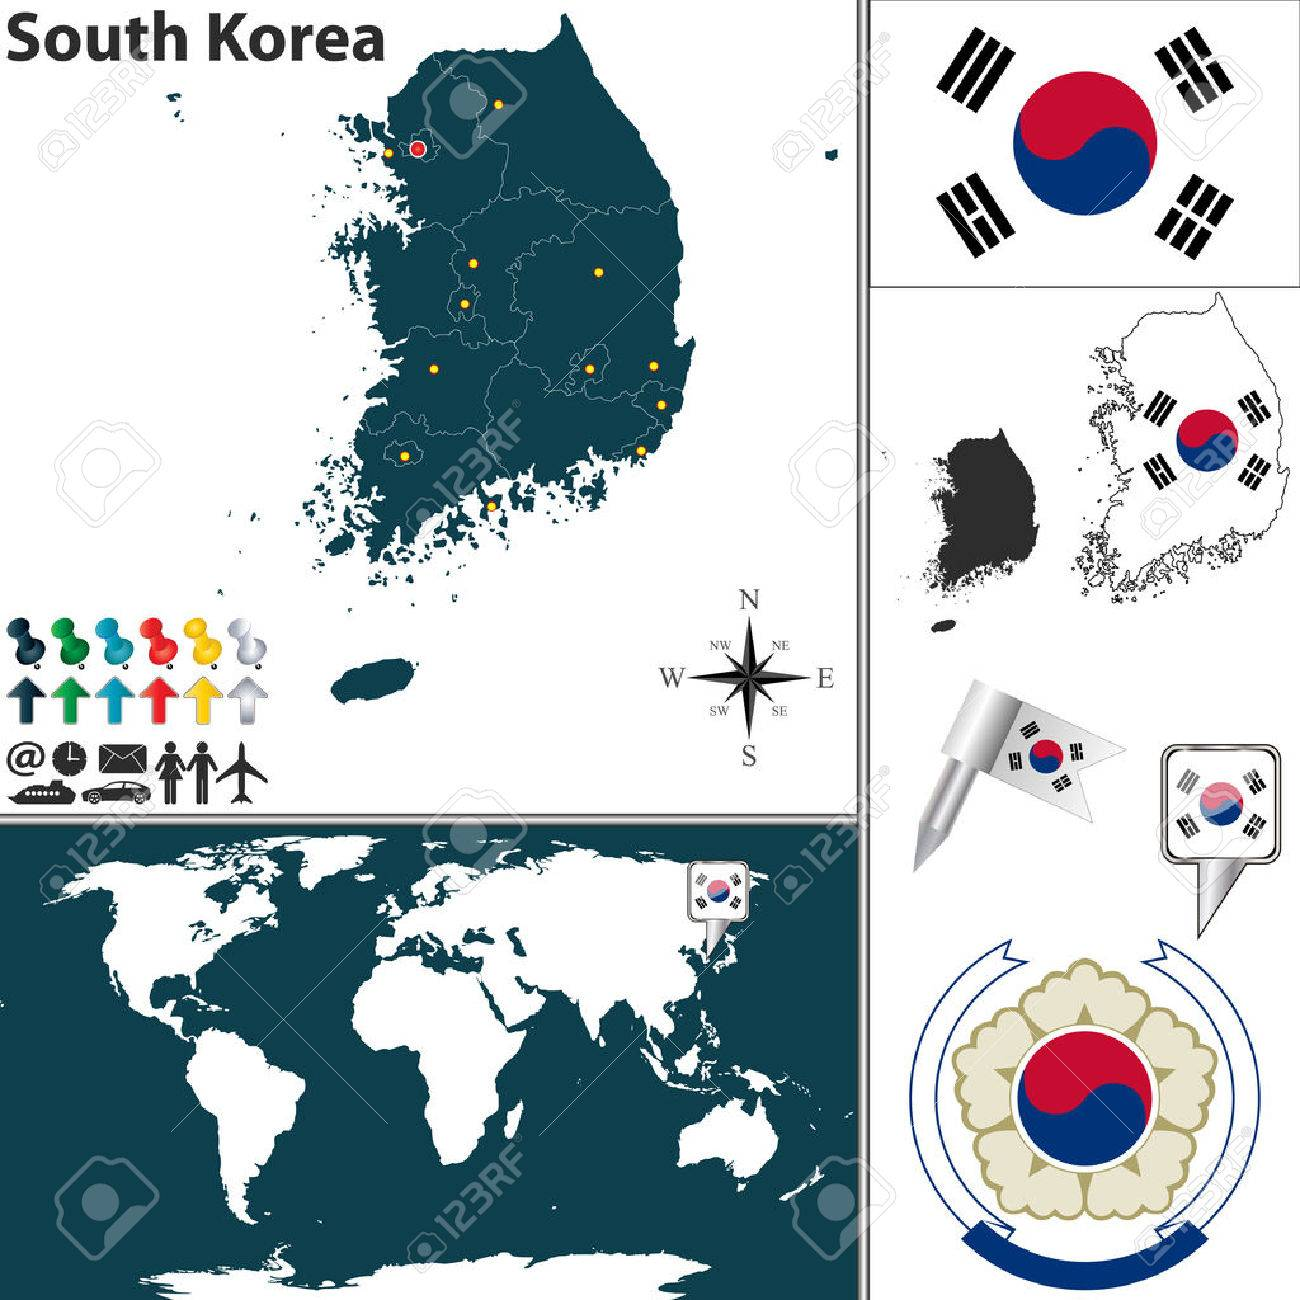 Vector Map Of South Korea With Regions Coat Of Arms And Location